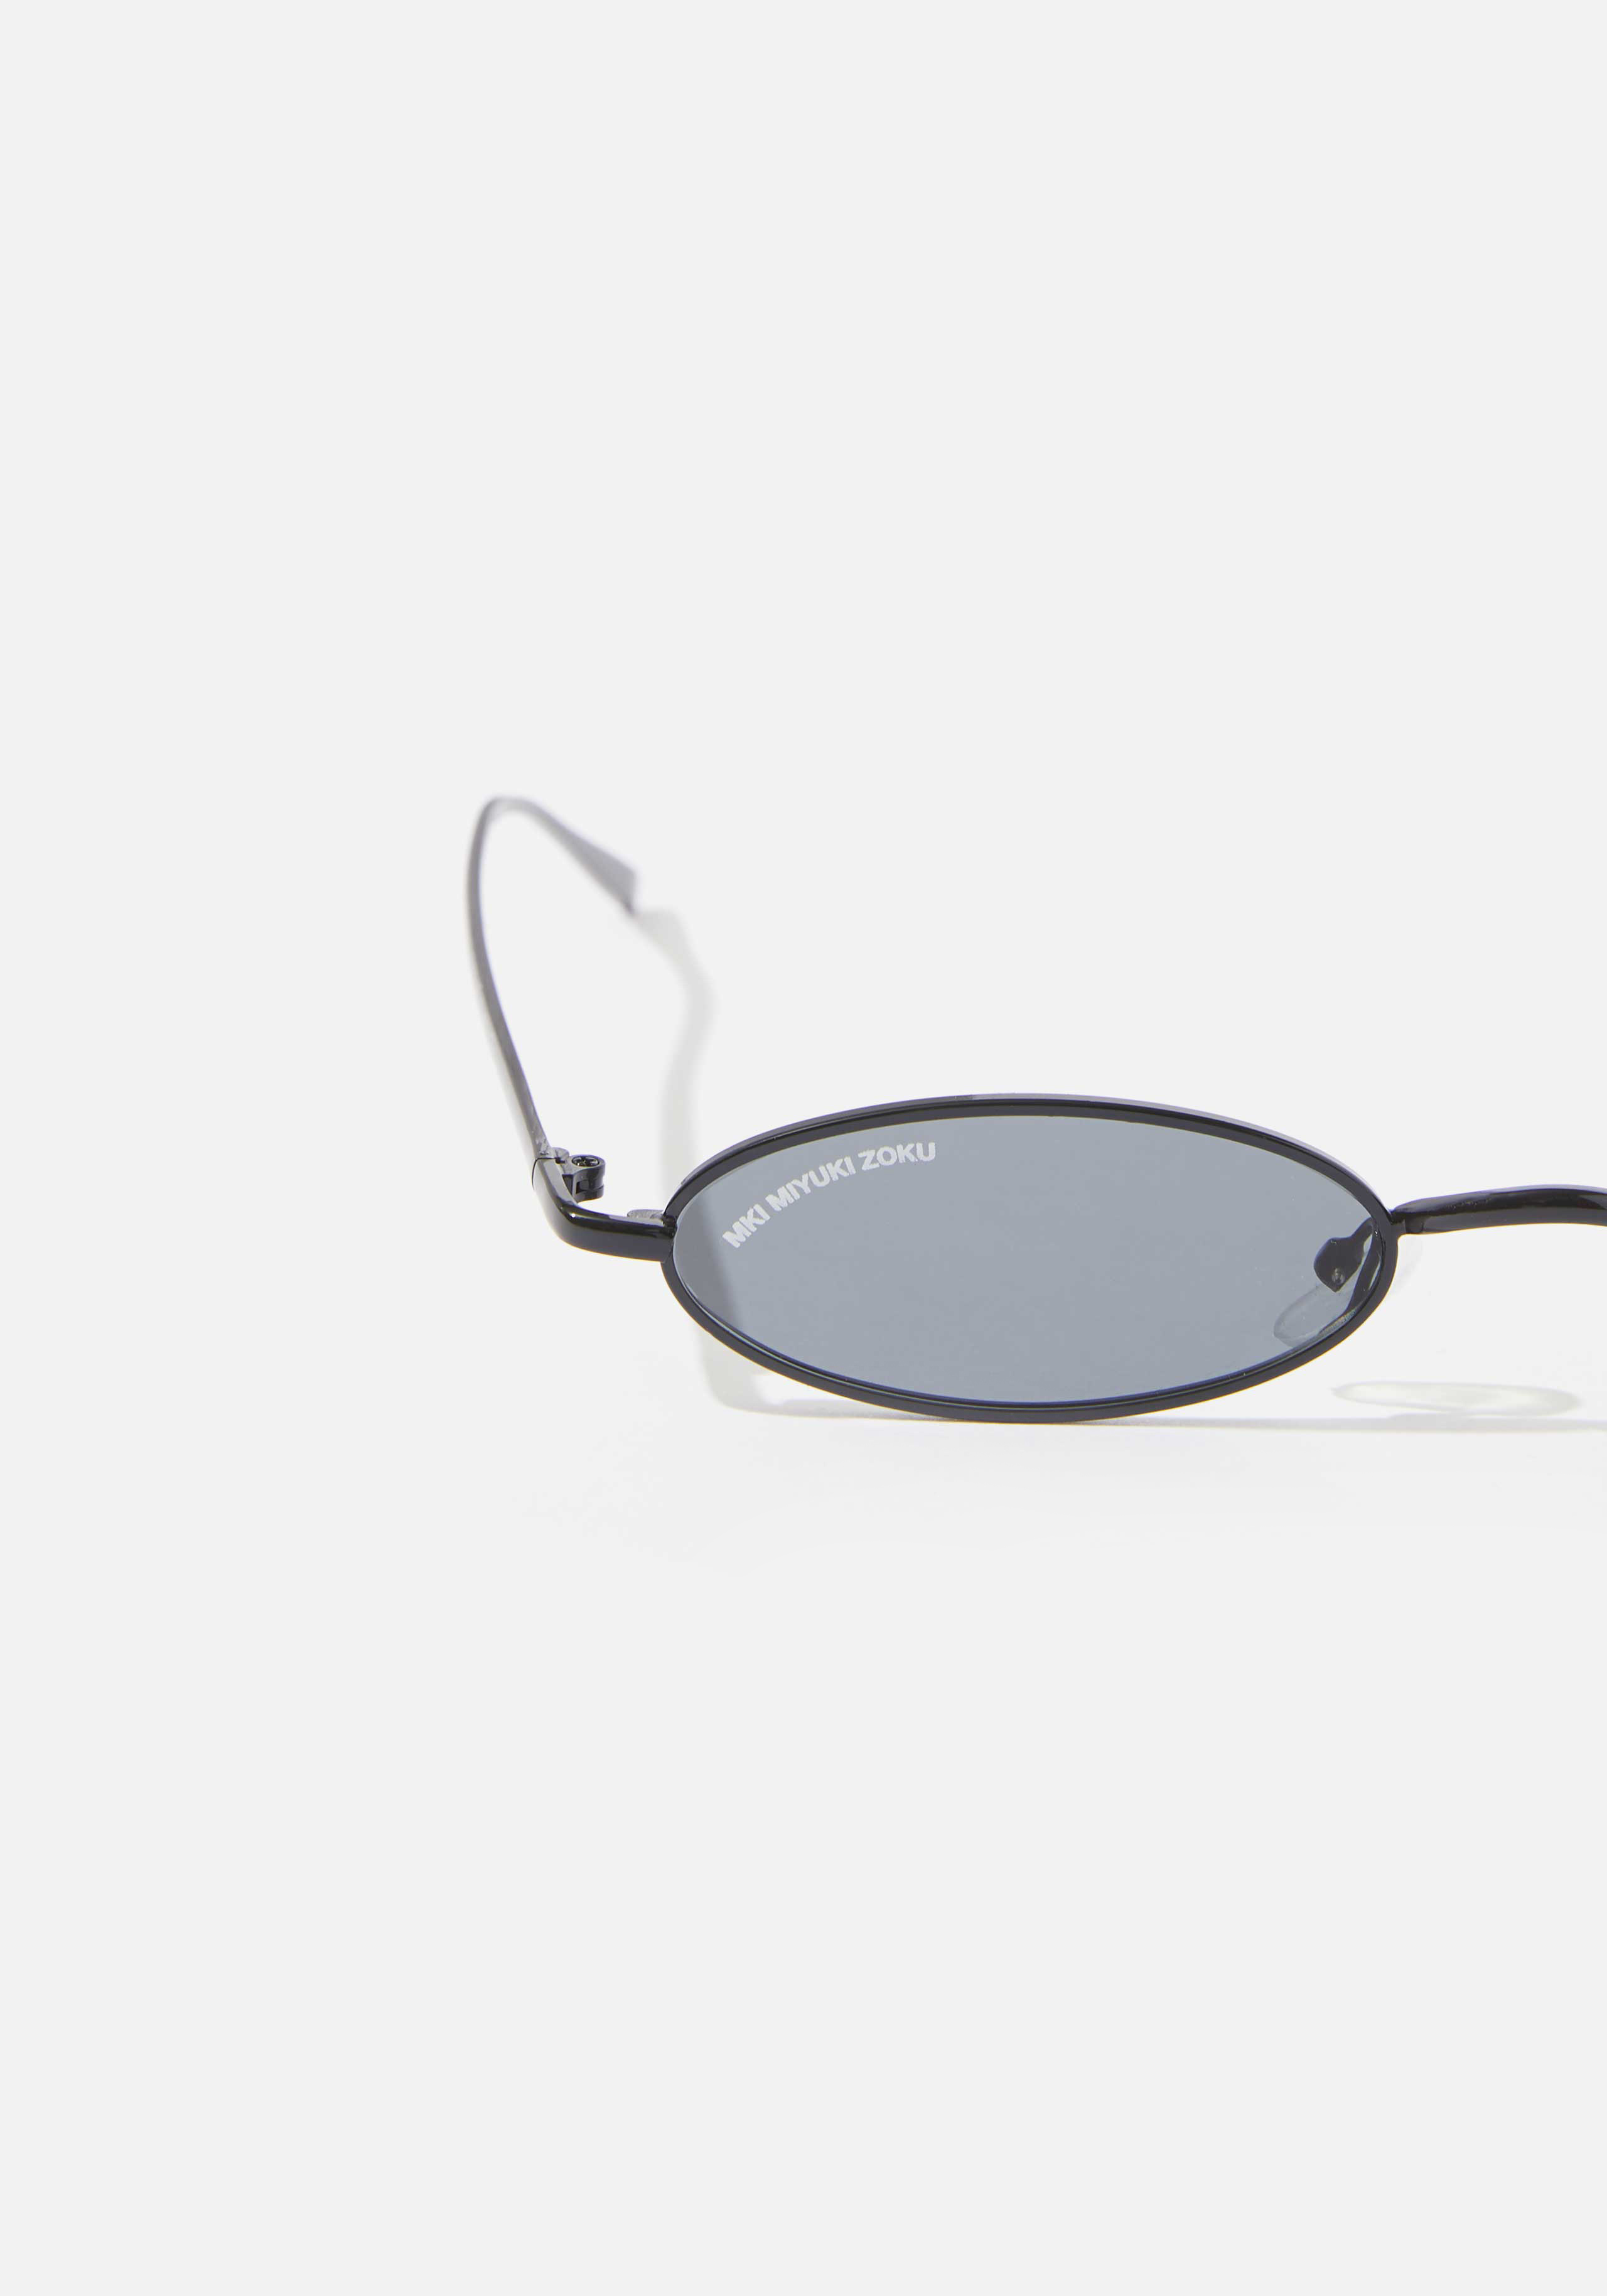 mki metal oval sunglasses 3